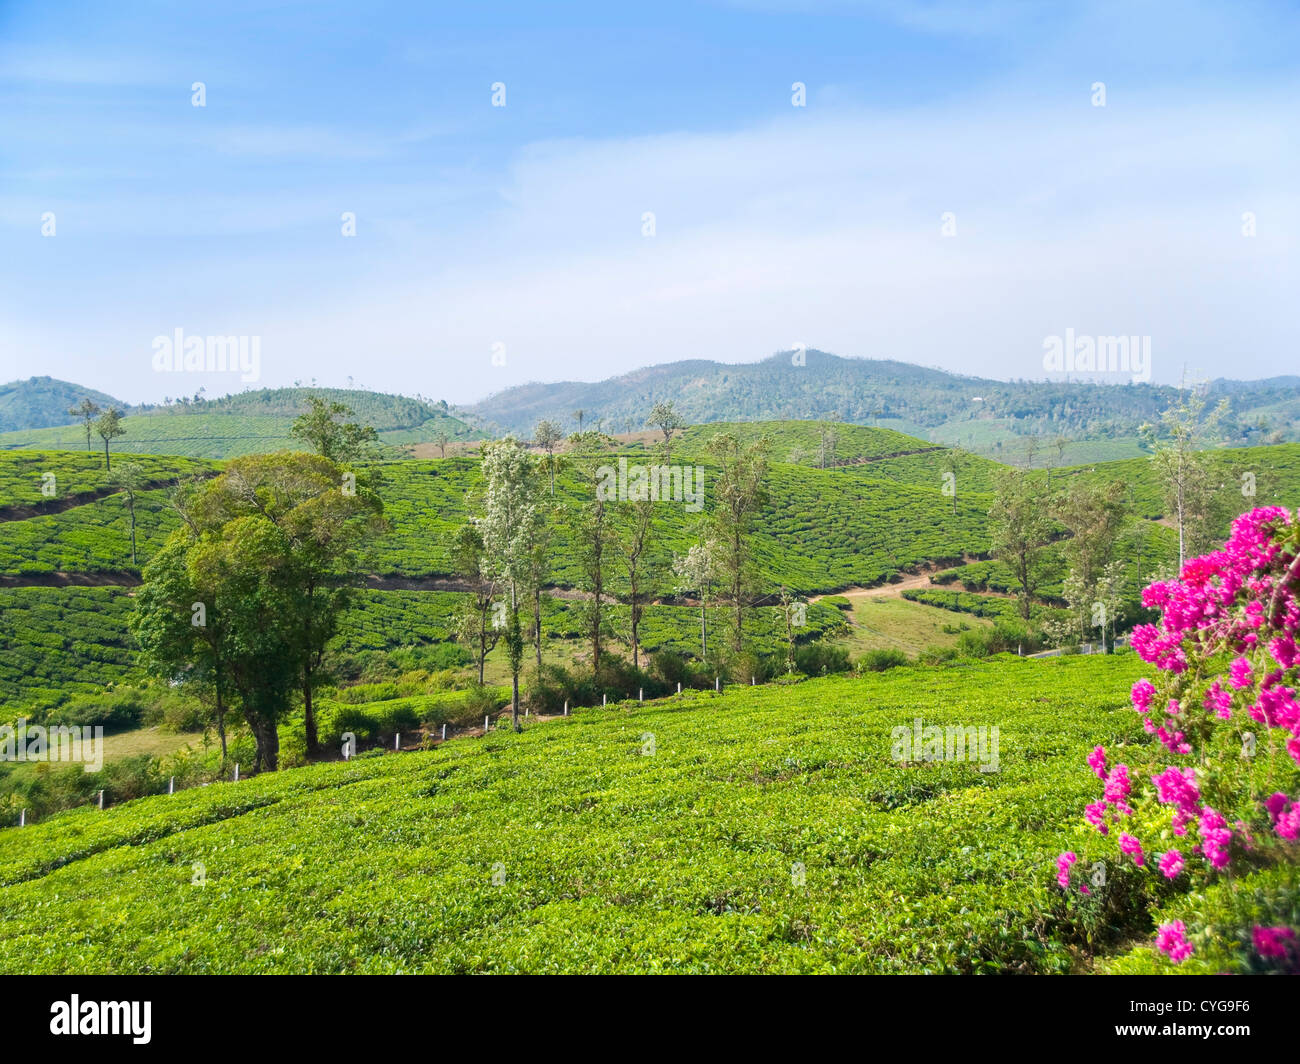 Horizontal view across the stunning tea plantation landscape in the high ranges of Idukki district, India. - Stock Image